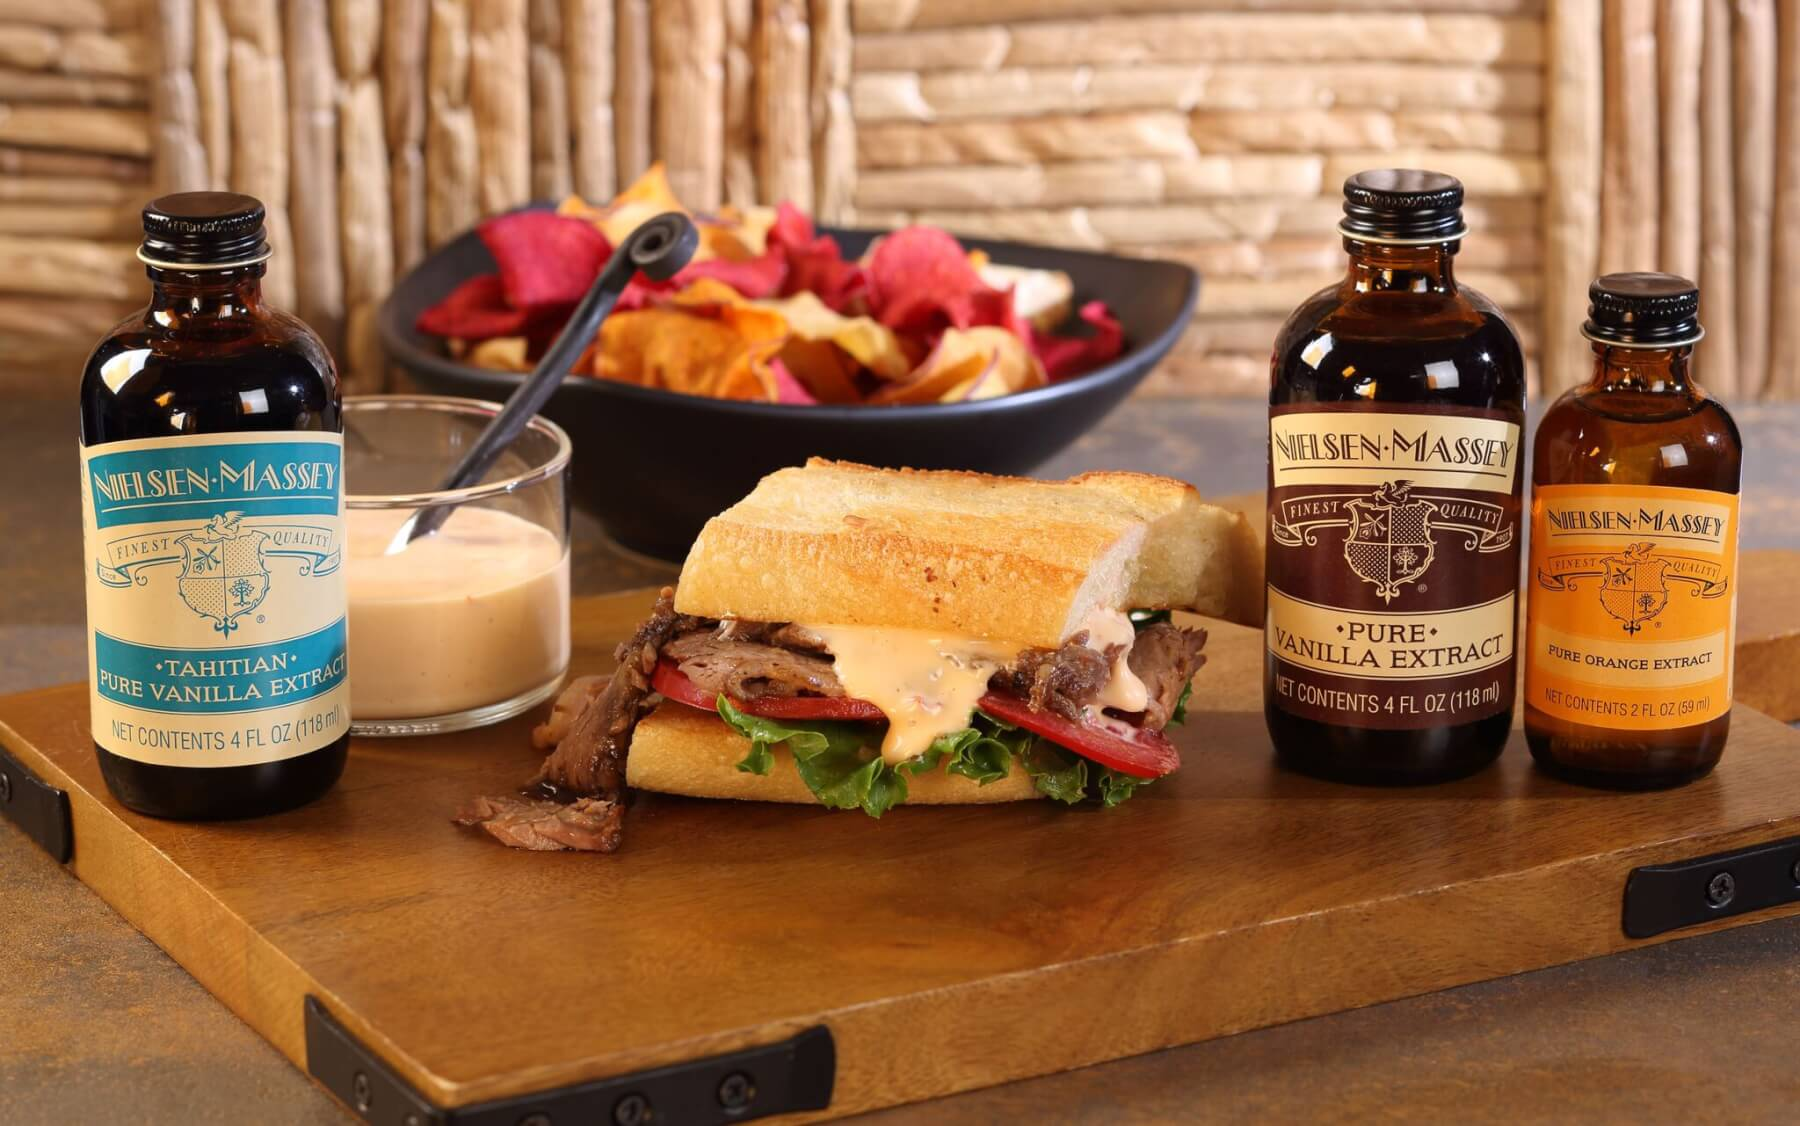 Korean Style Oven Barbecued Beef Brisket Sandwich With